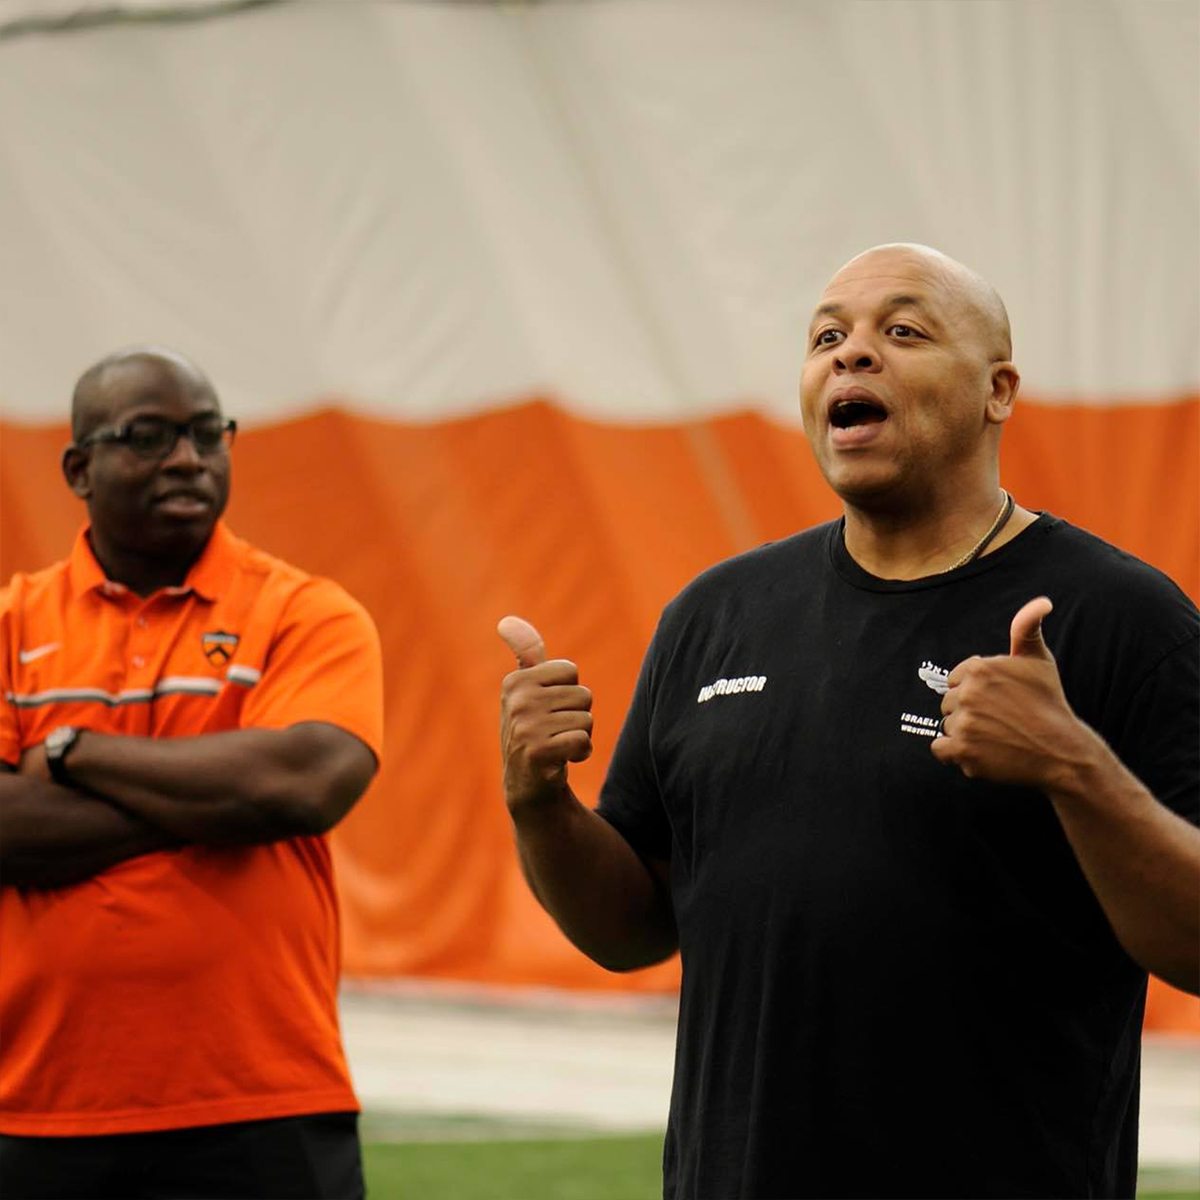 David-Kahn-Krav-Maga-Football-Combatives-Princeton-Tigers-Poodie-Carson3.jpg